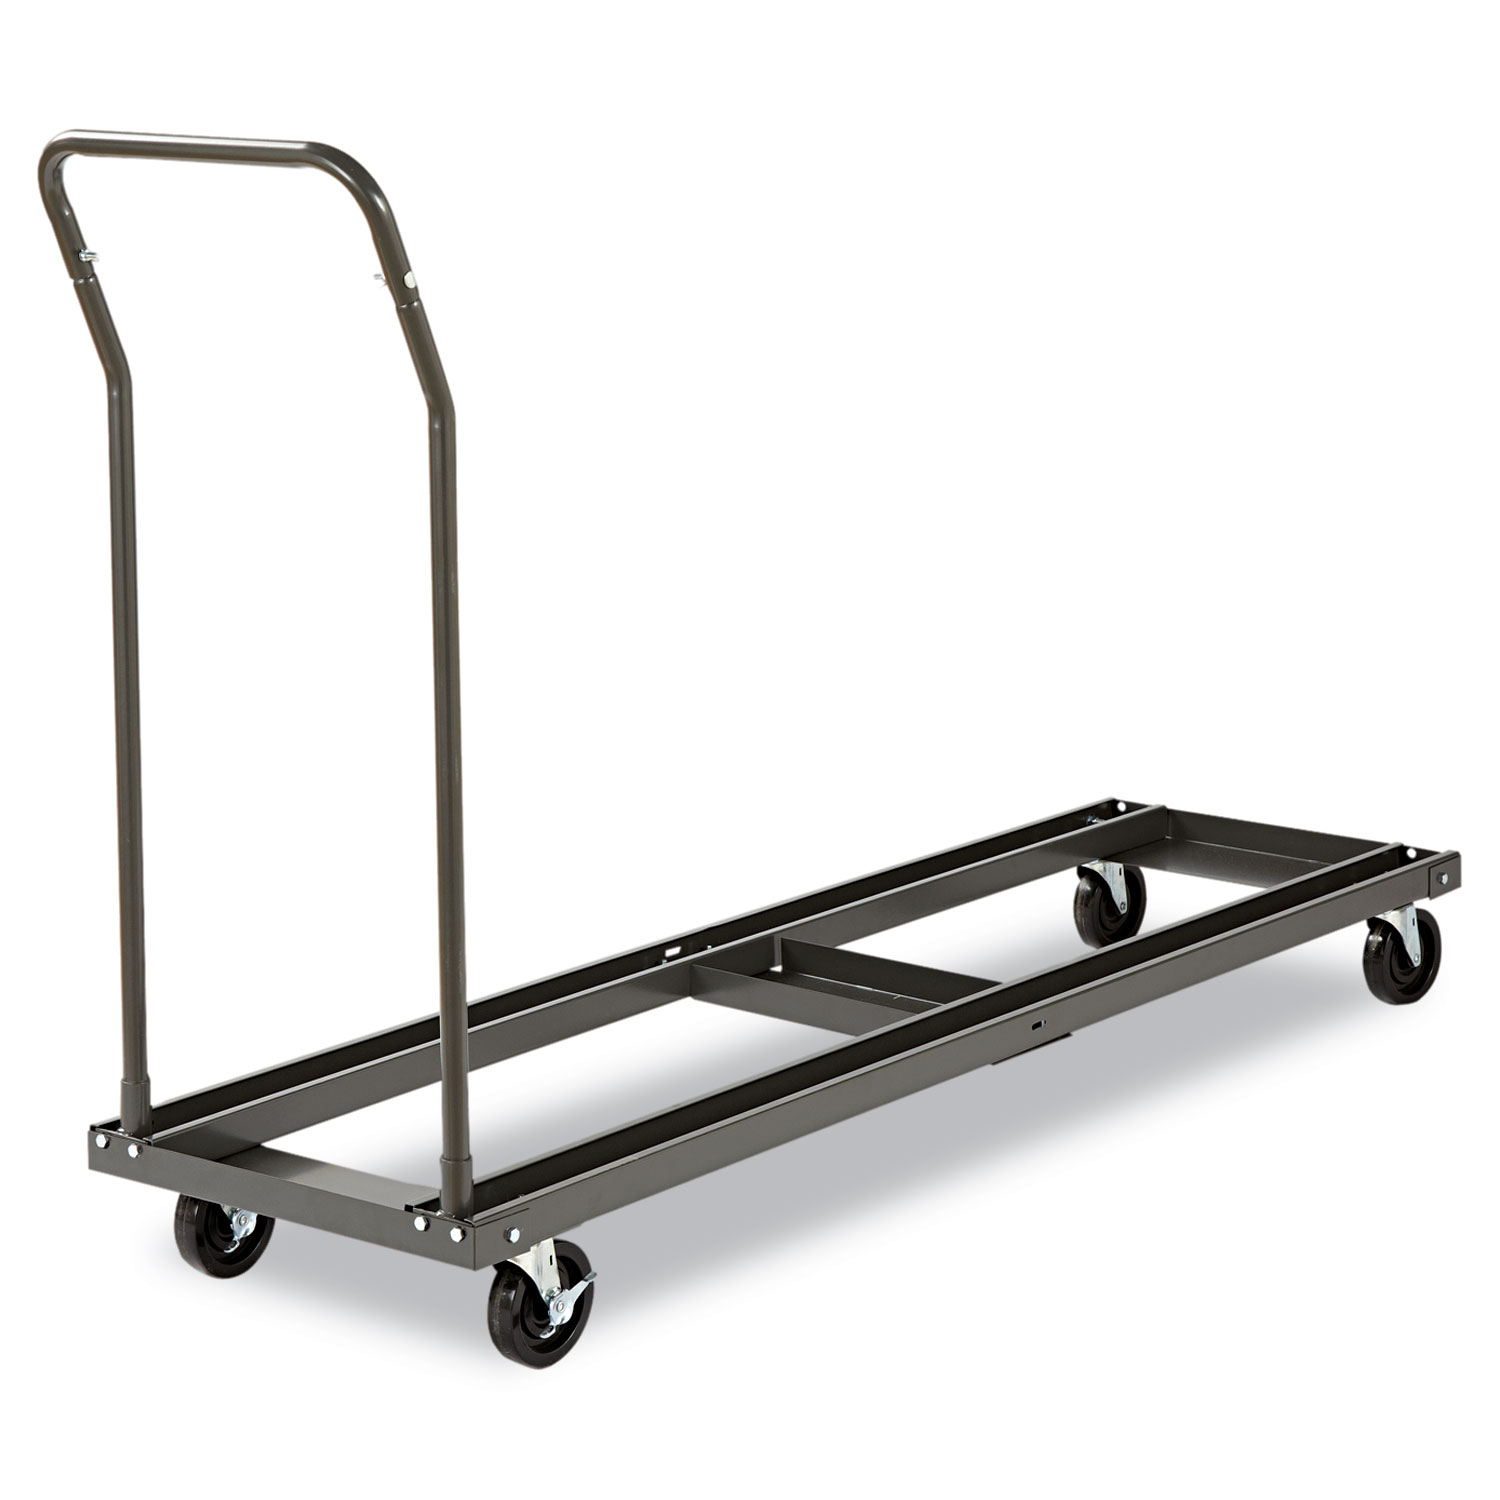 Chair And Table Cart 20 86w X 50 78 To 72 04d Black